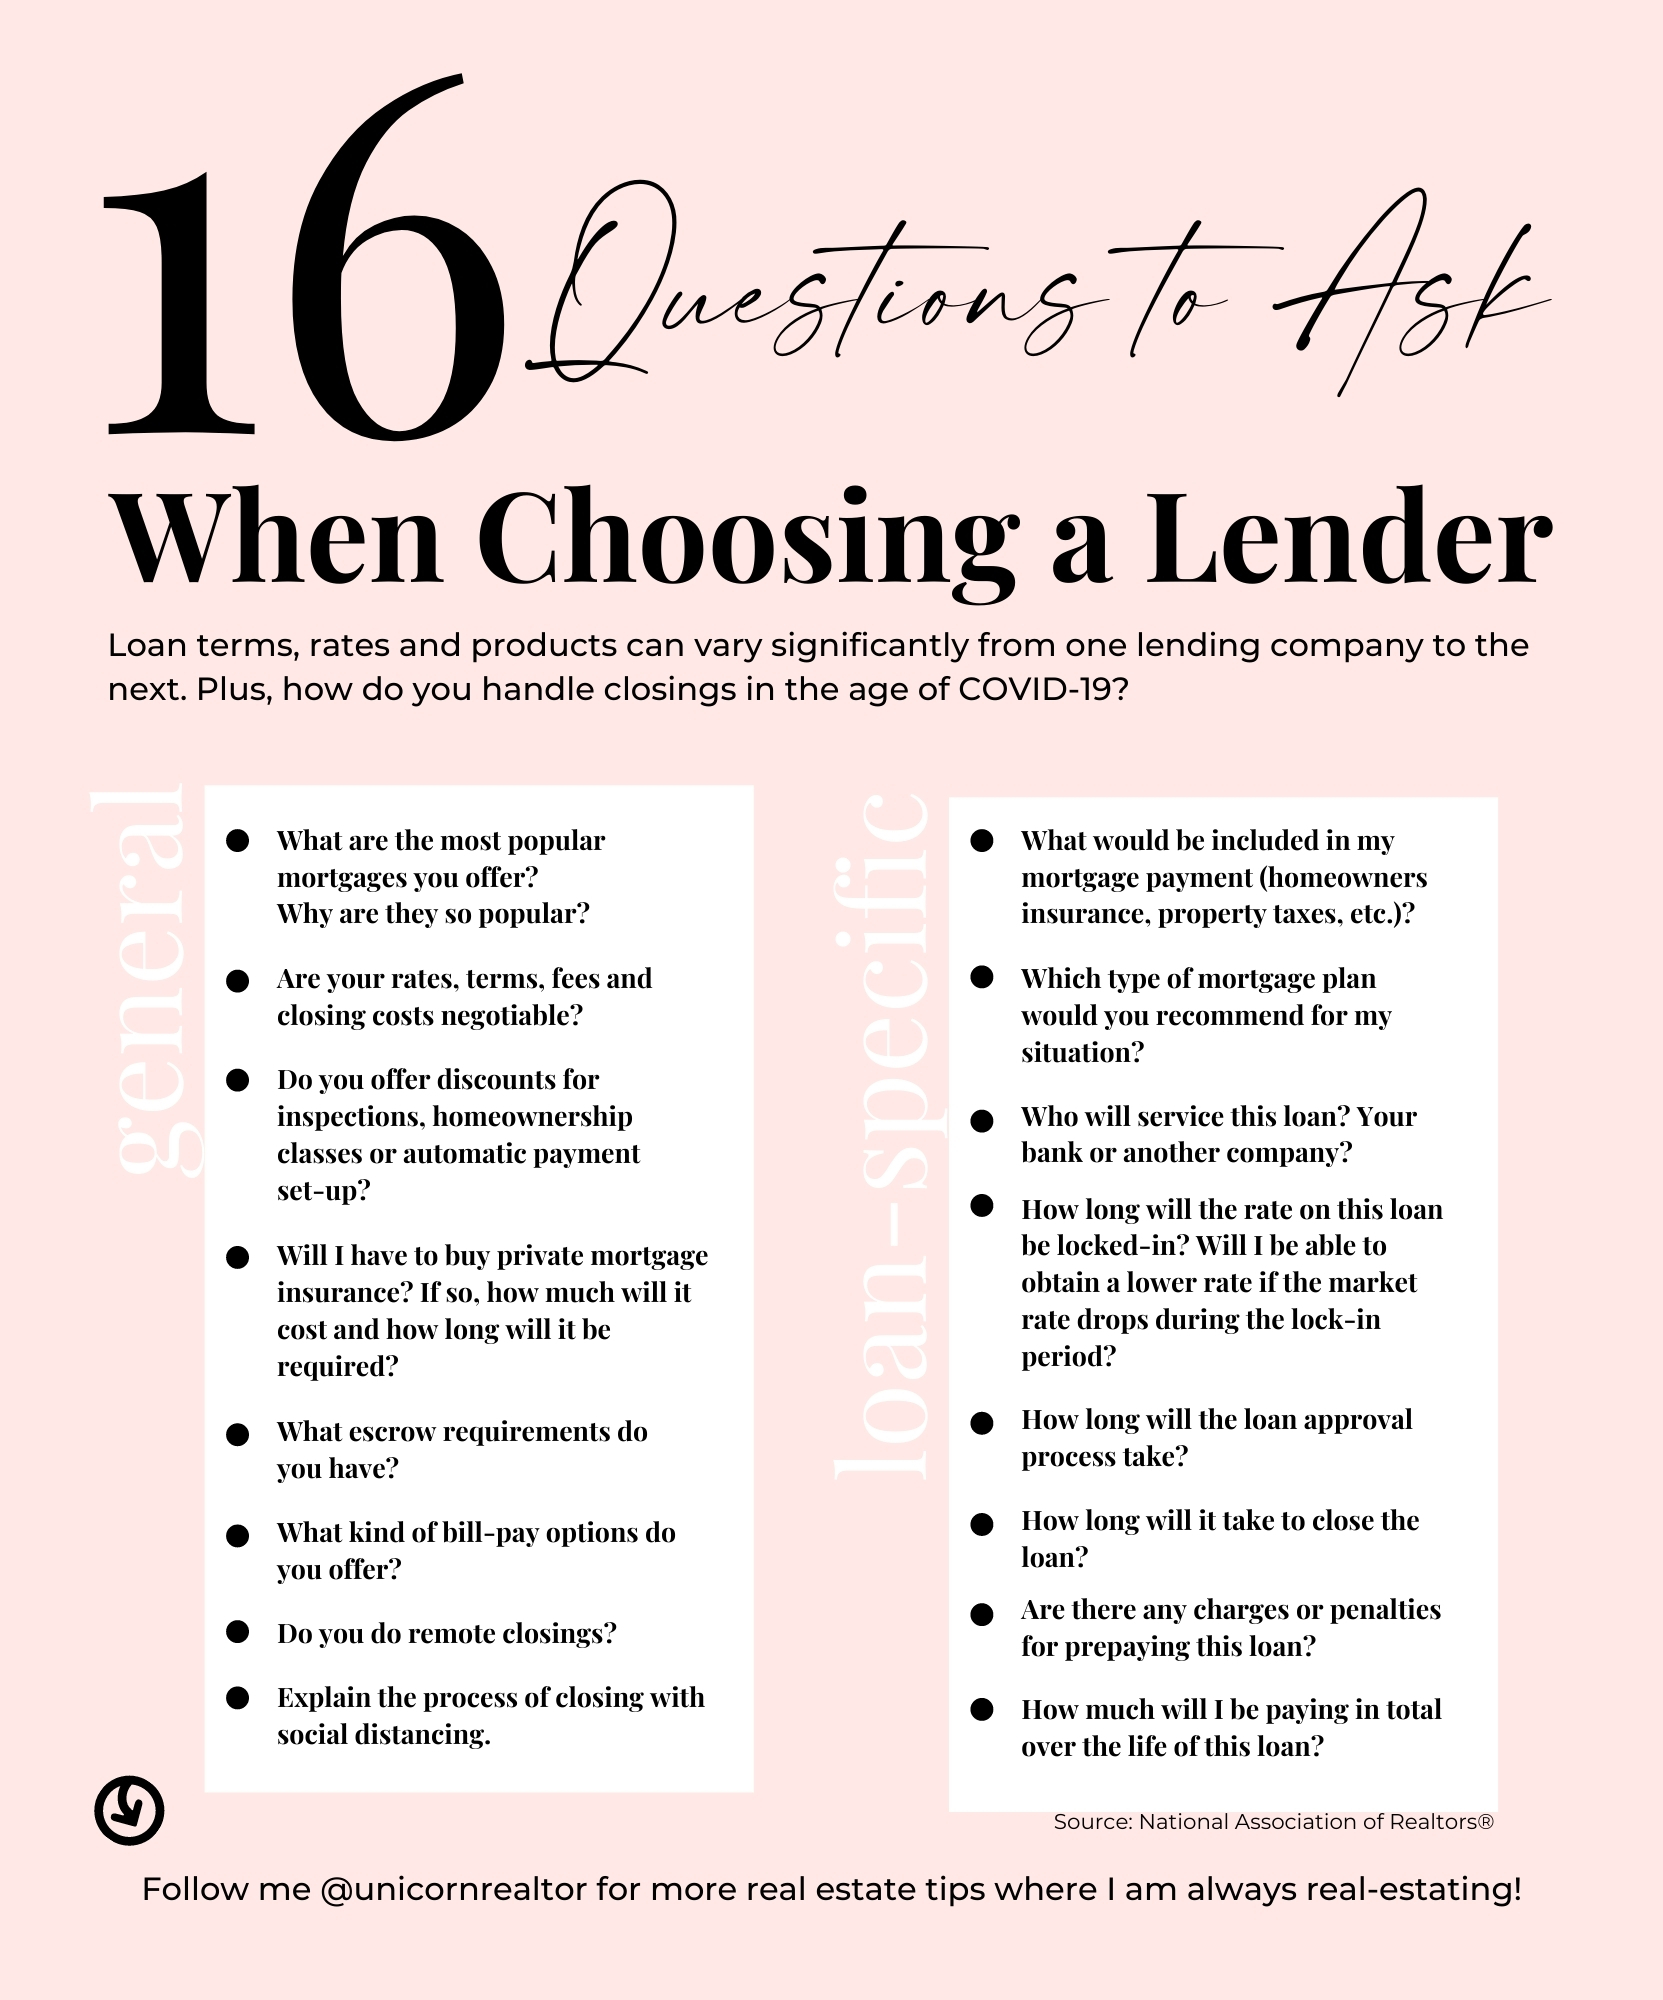 16 Questions to Ask a Lender